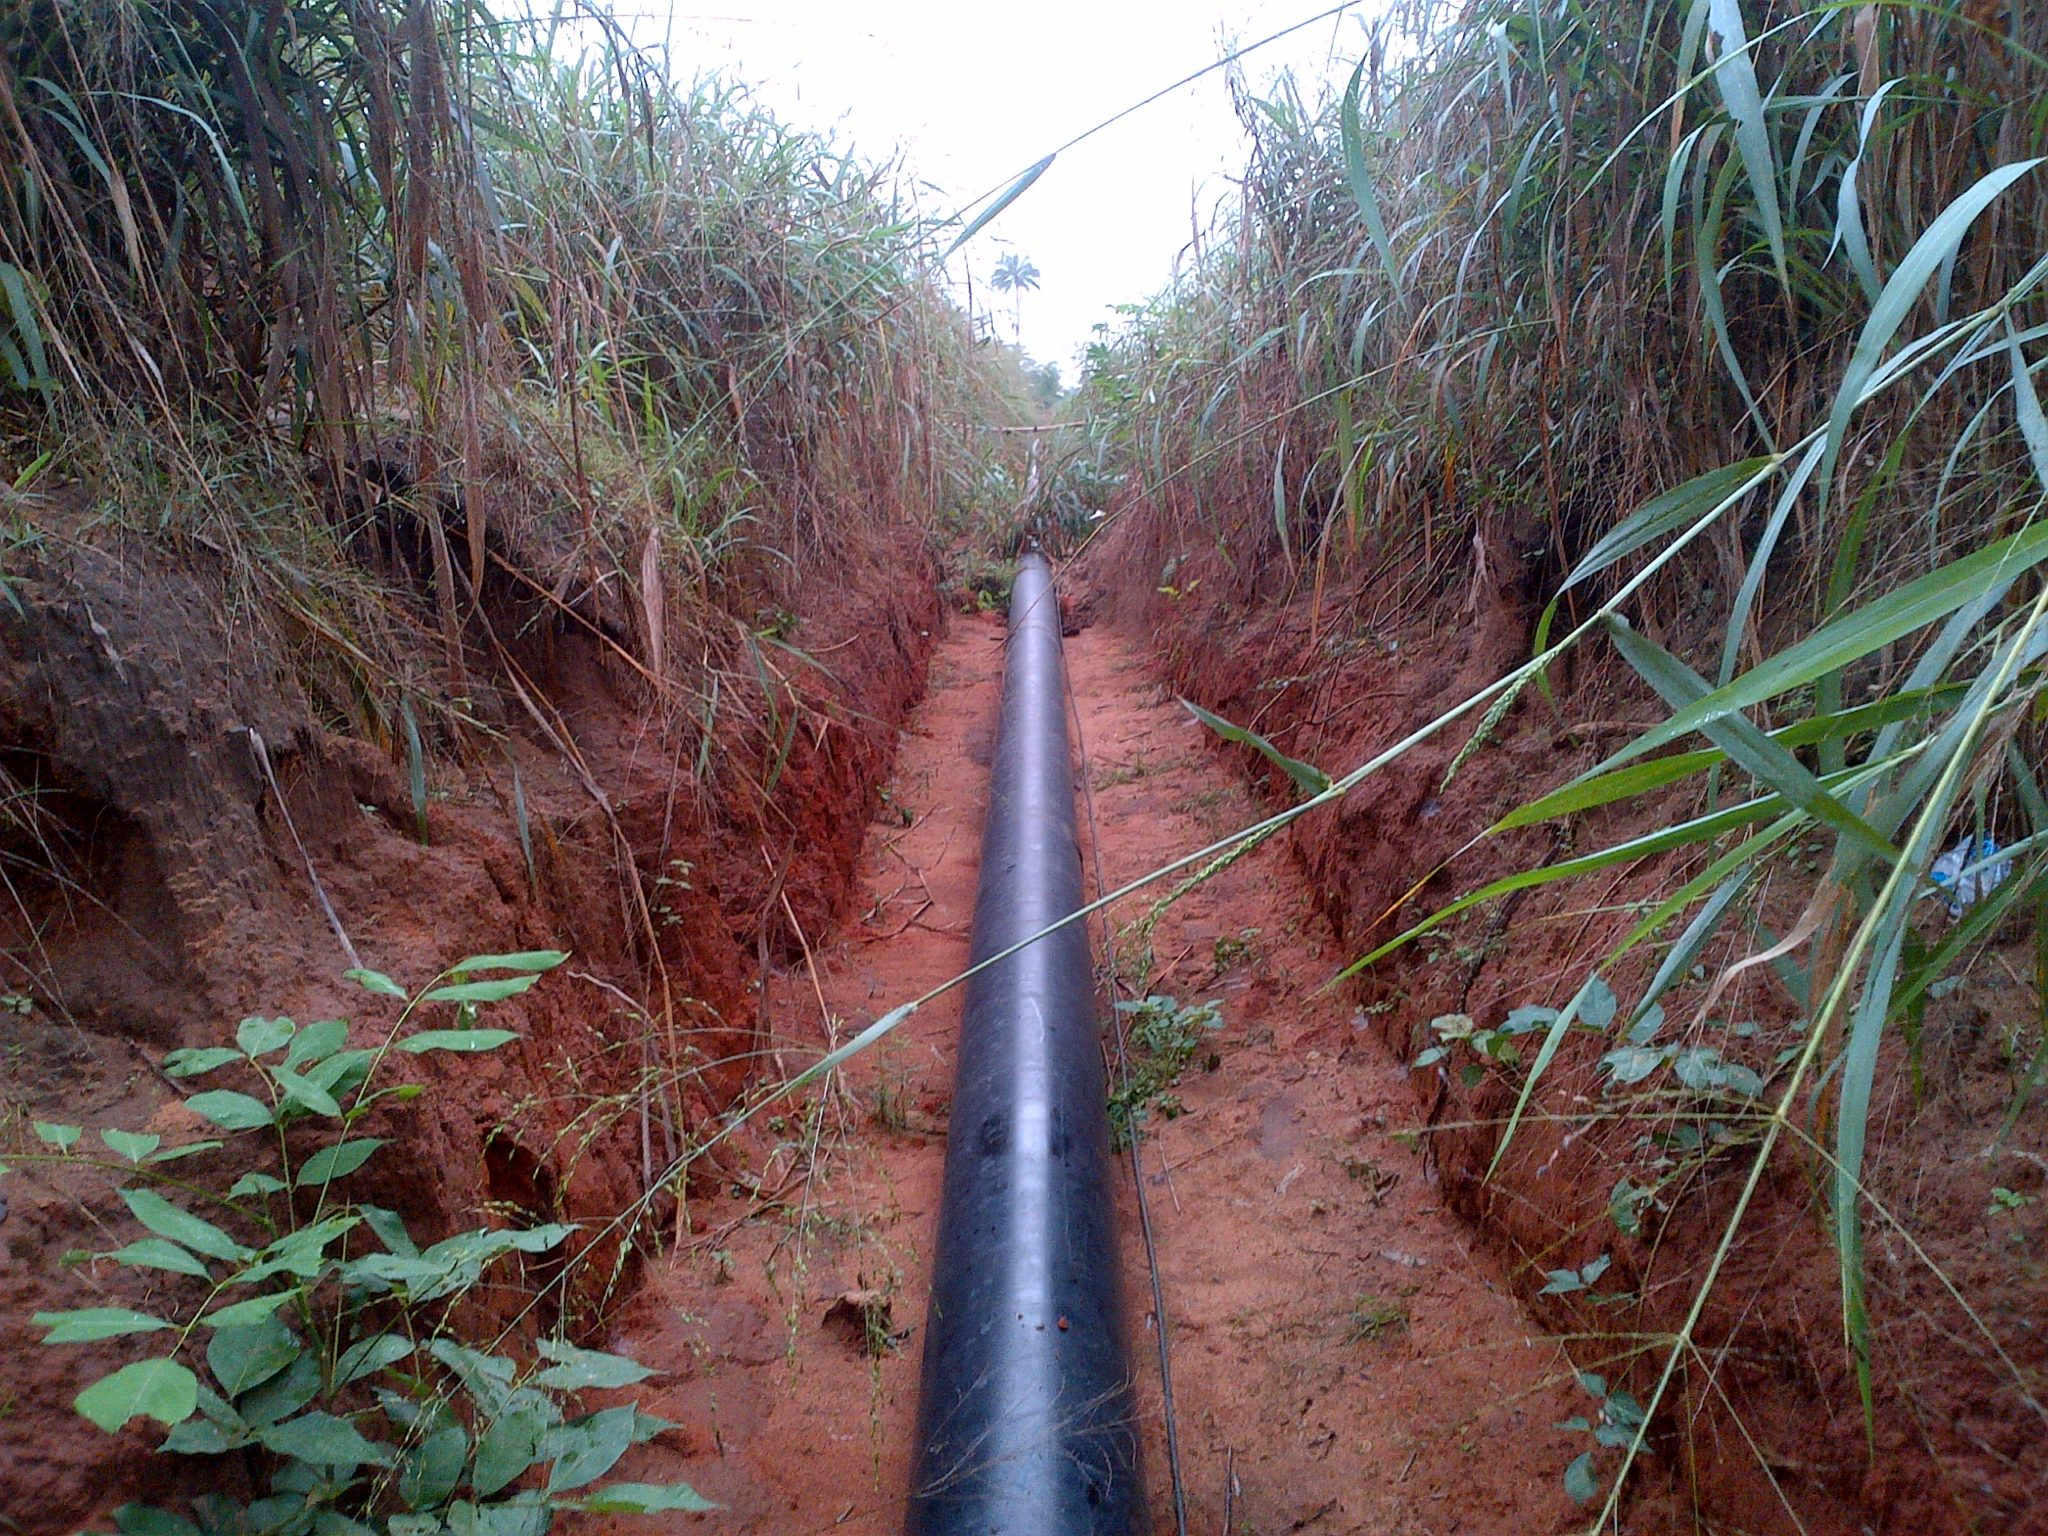 leak detection - pipeline surveillance